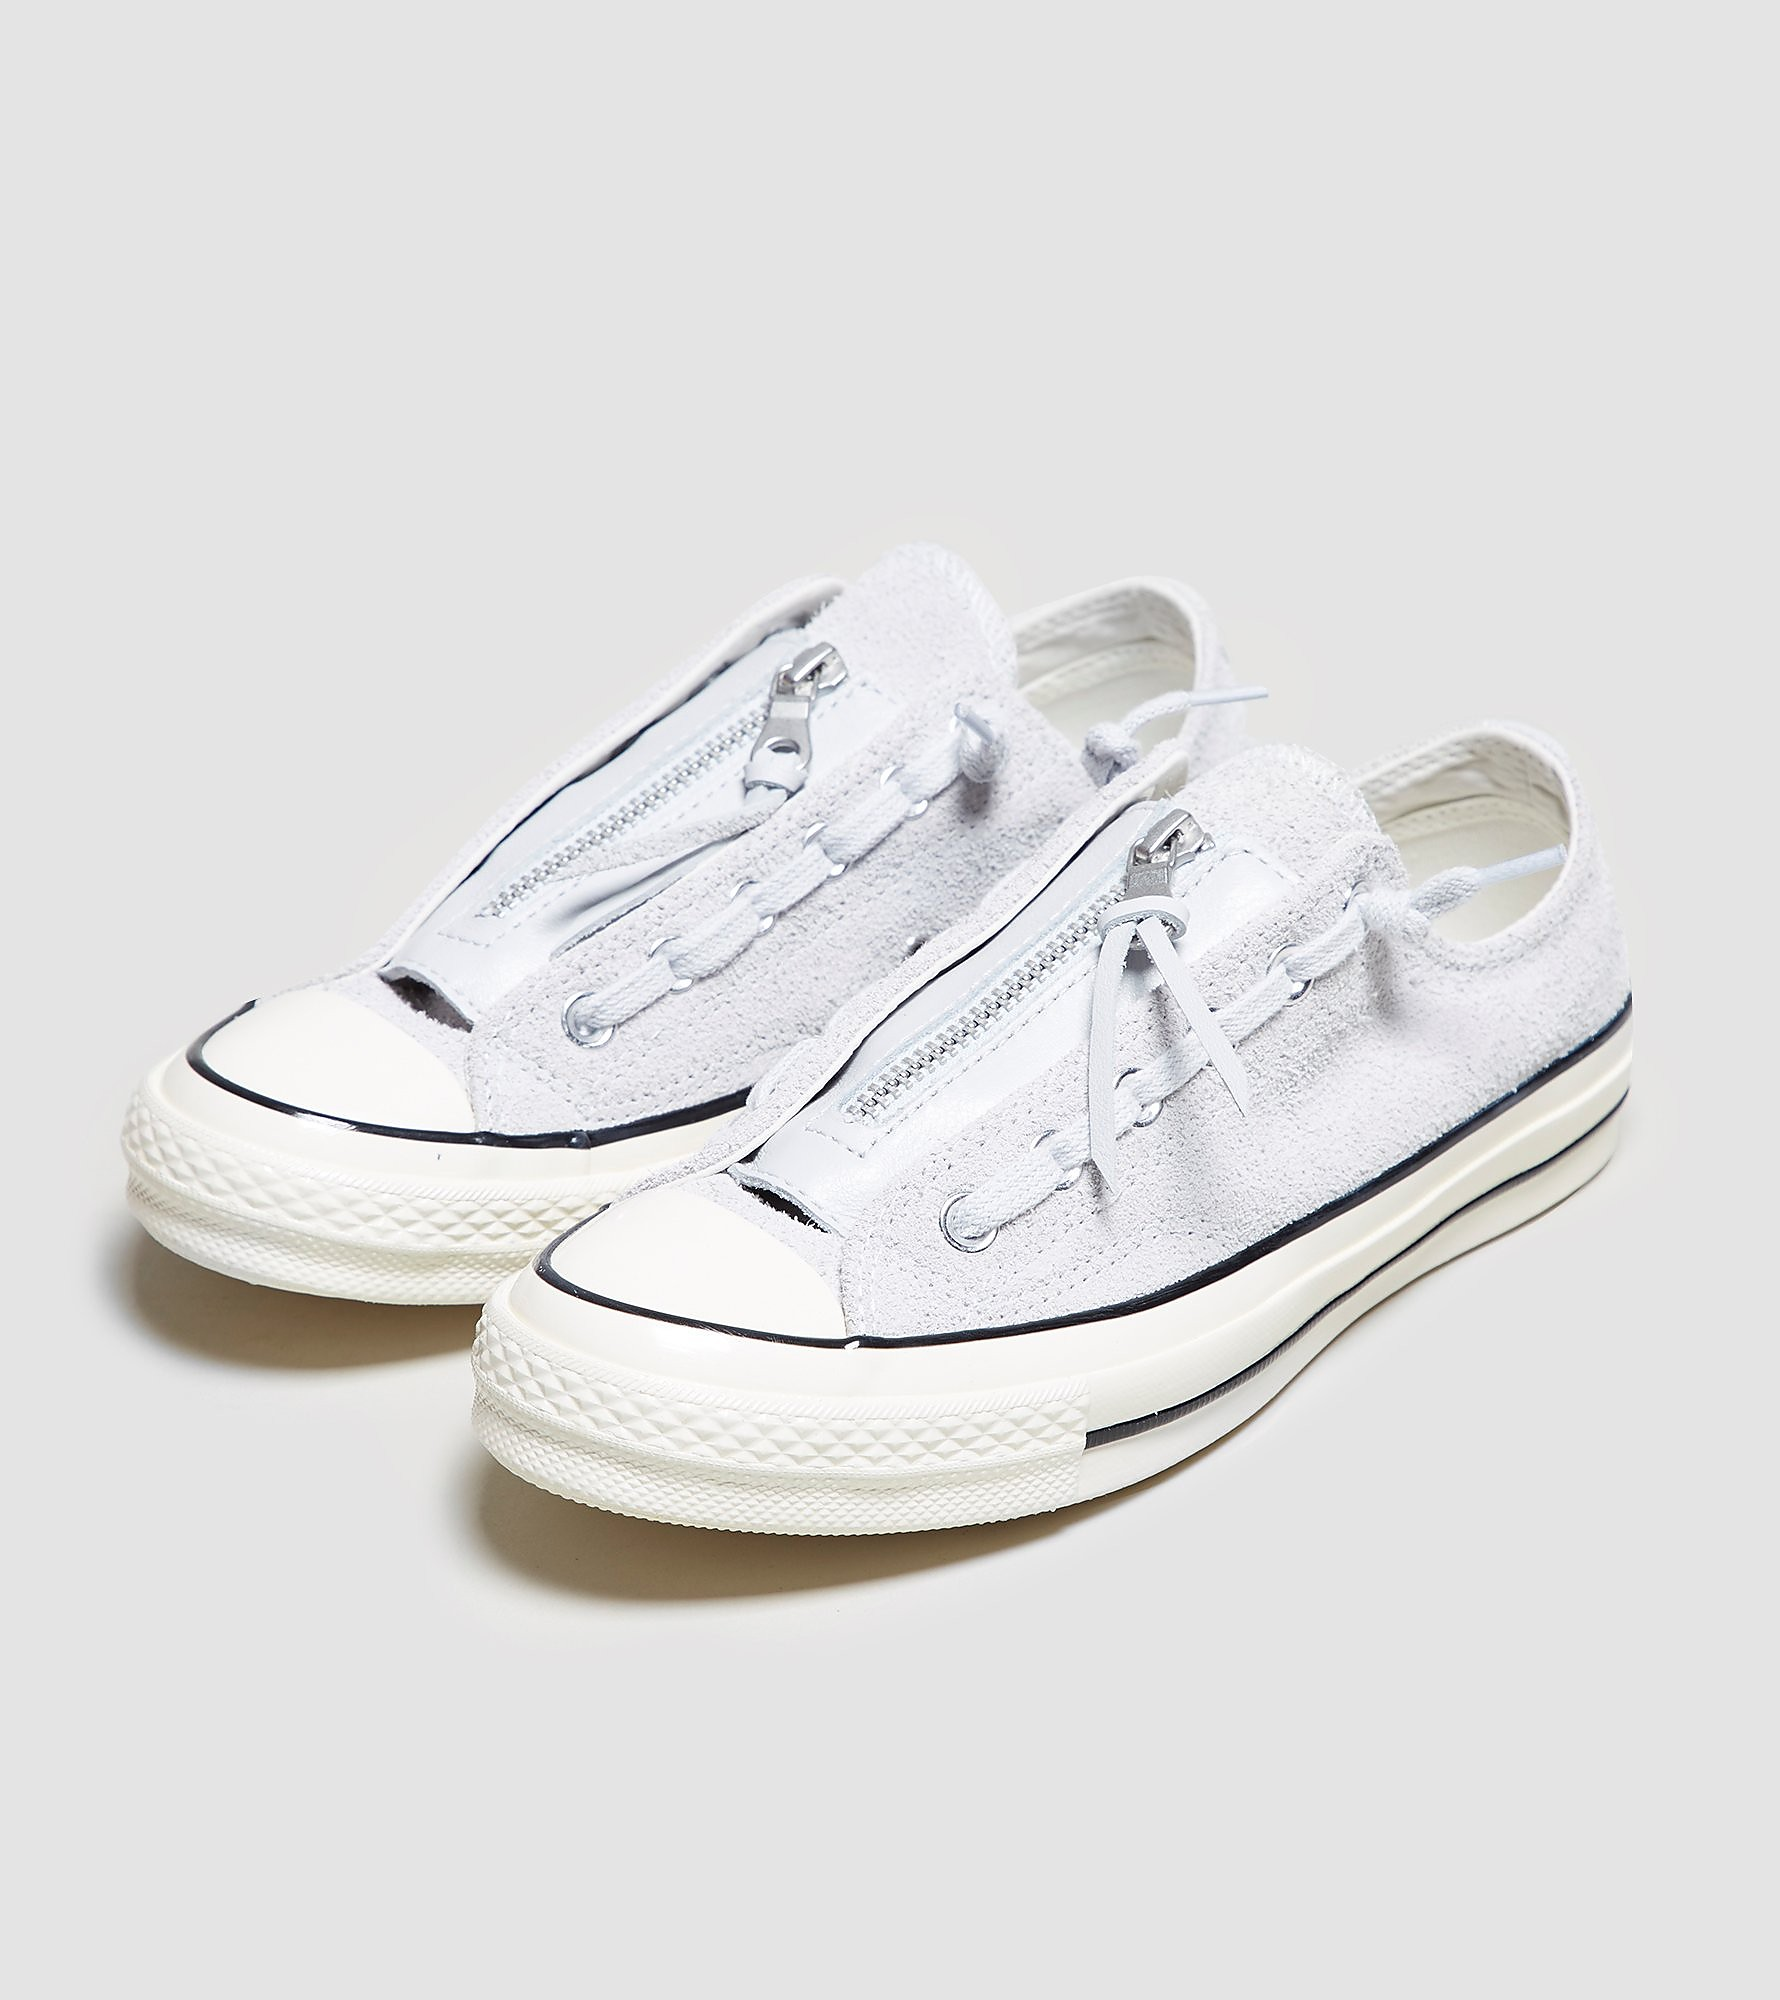 Converse Chuck Taylor All Star '70 Zip Low Women's